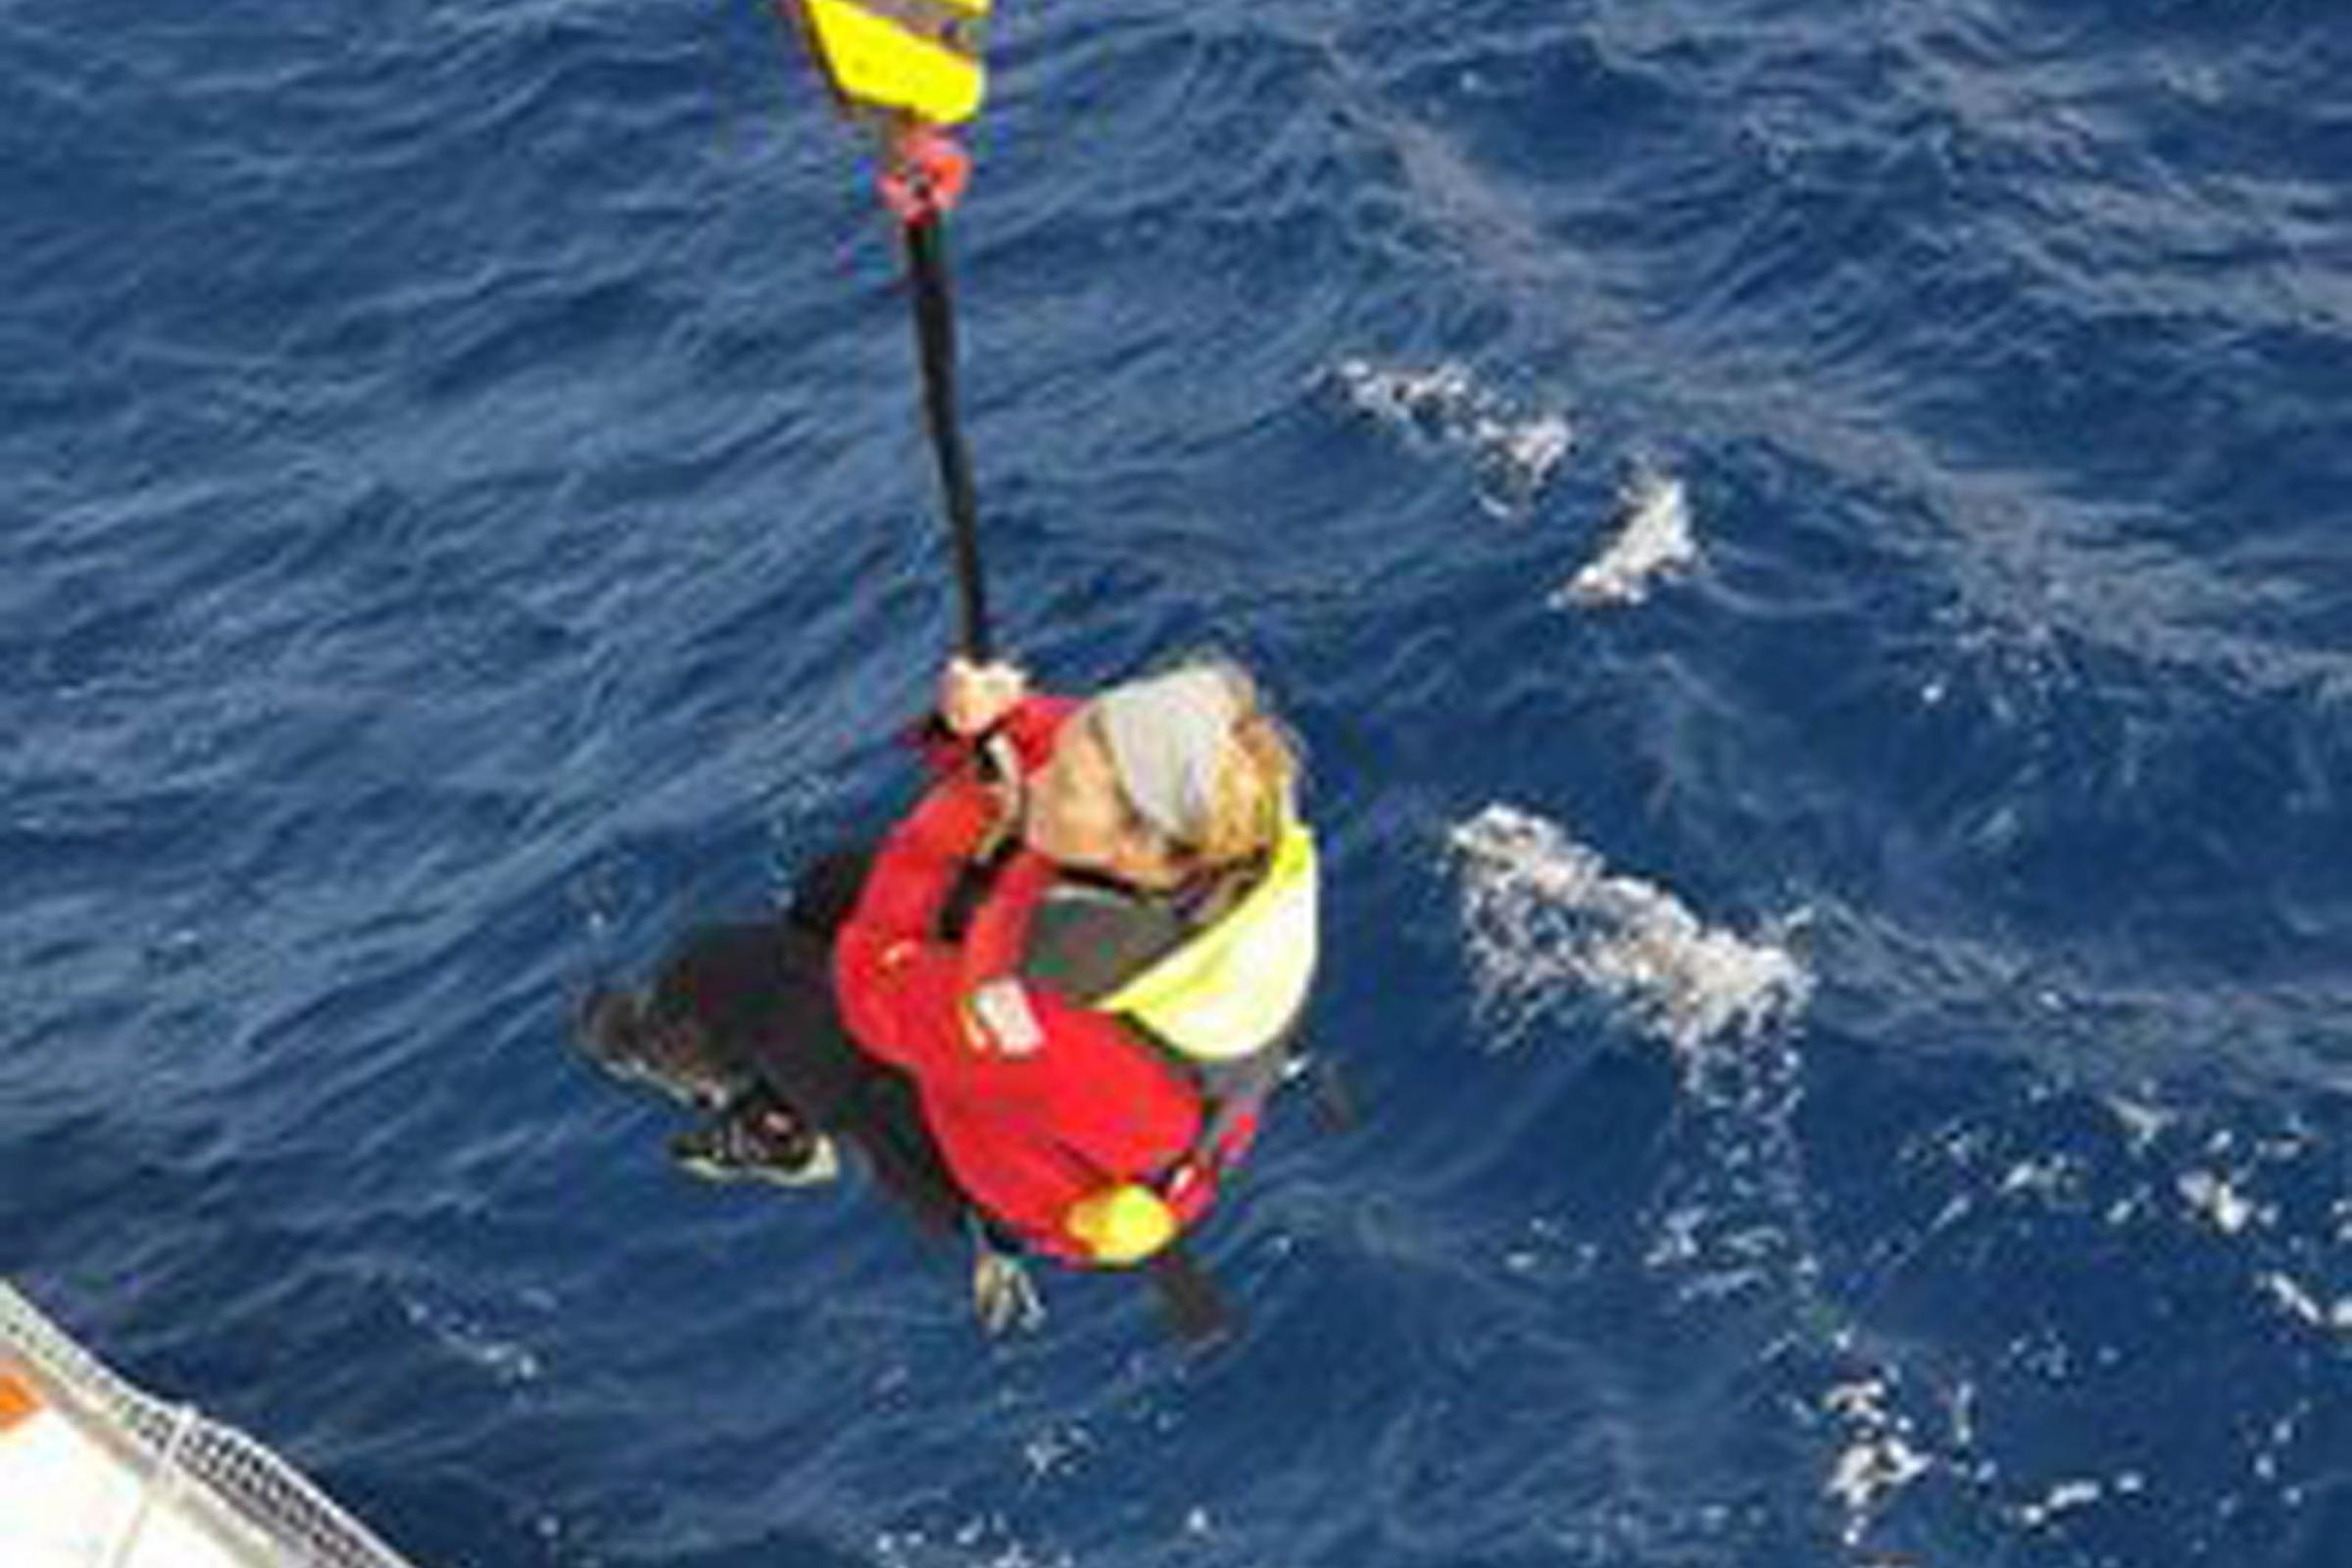 Susie Goodall being rescued